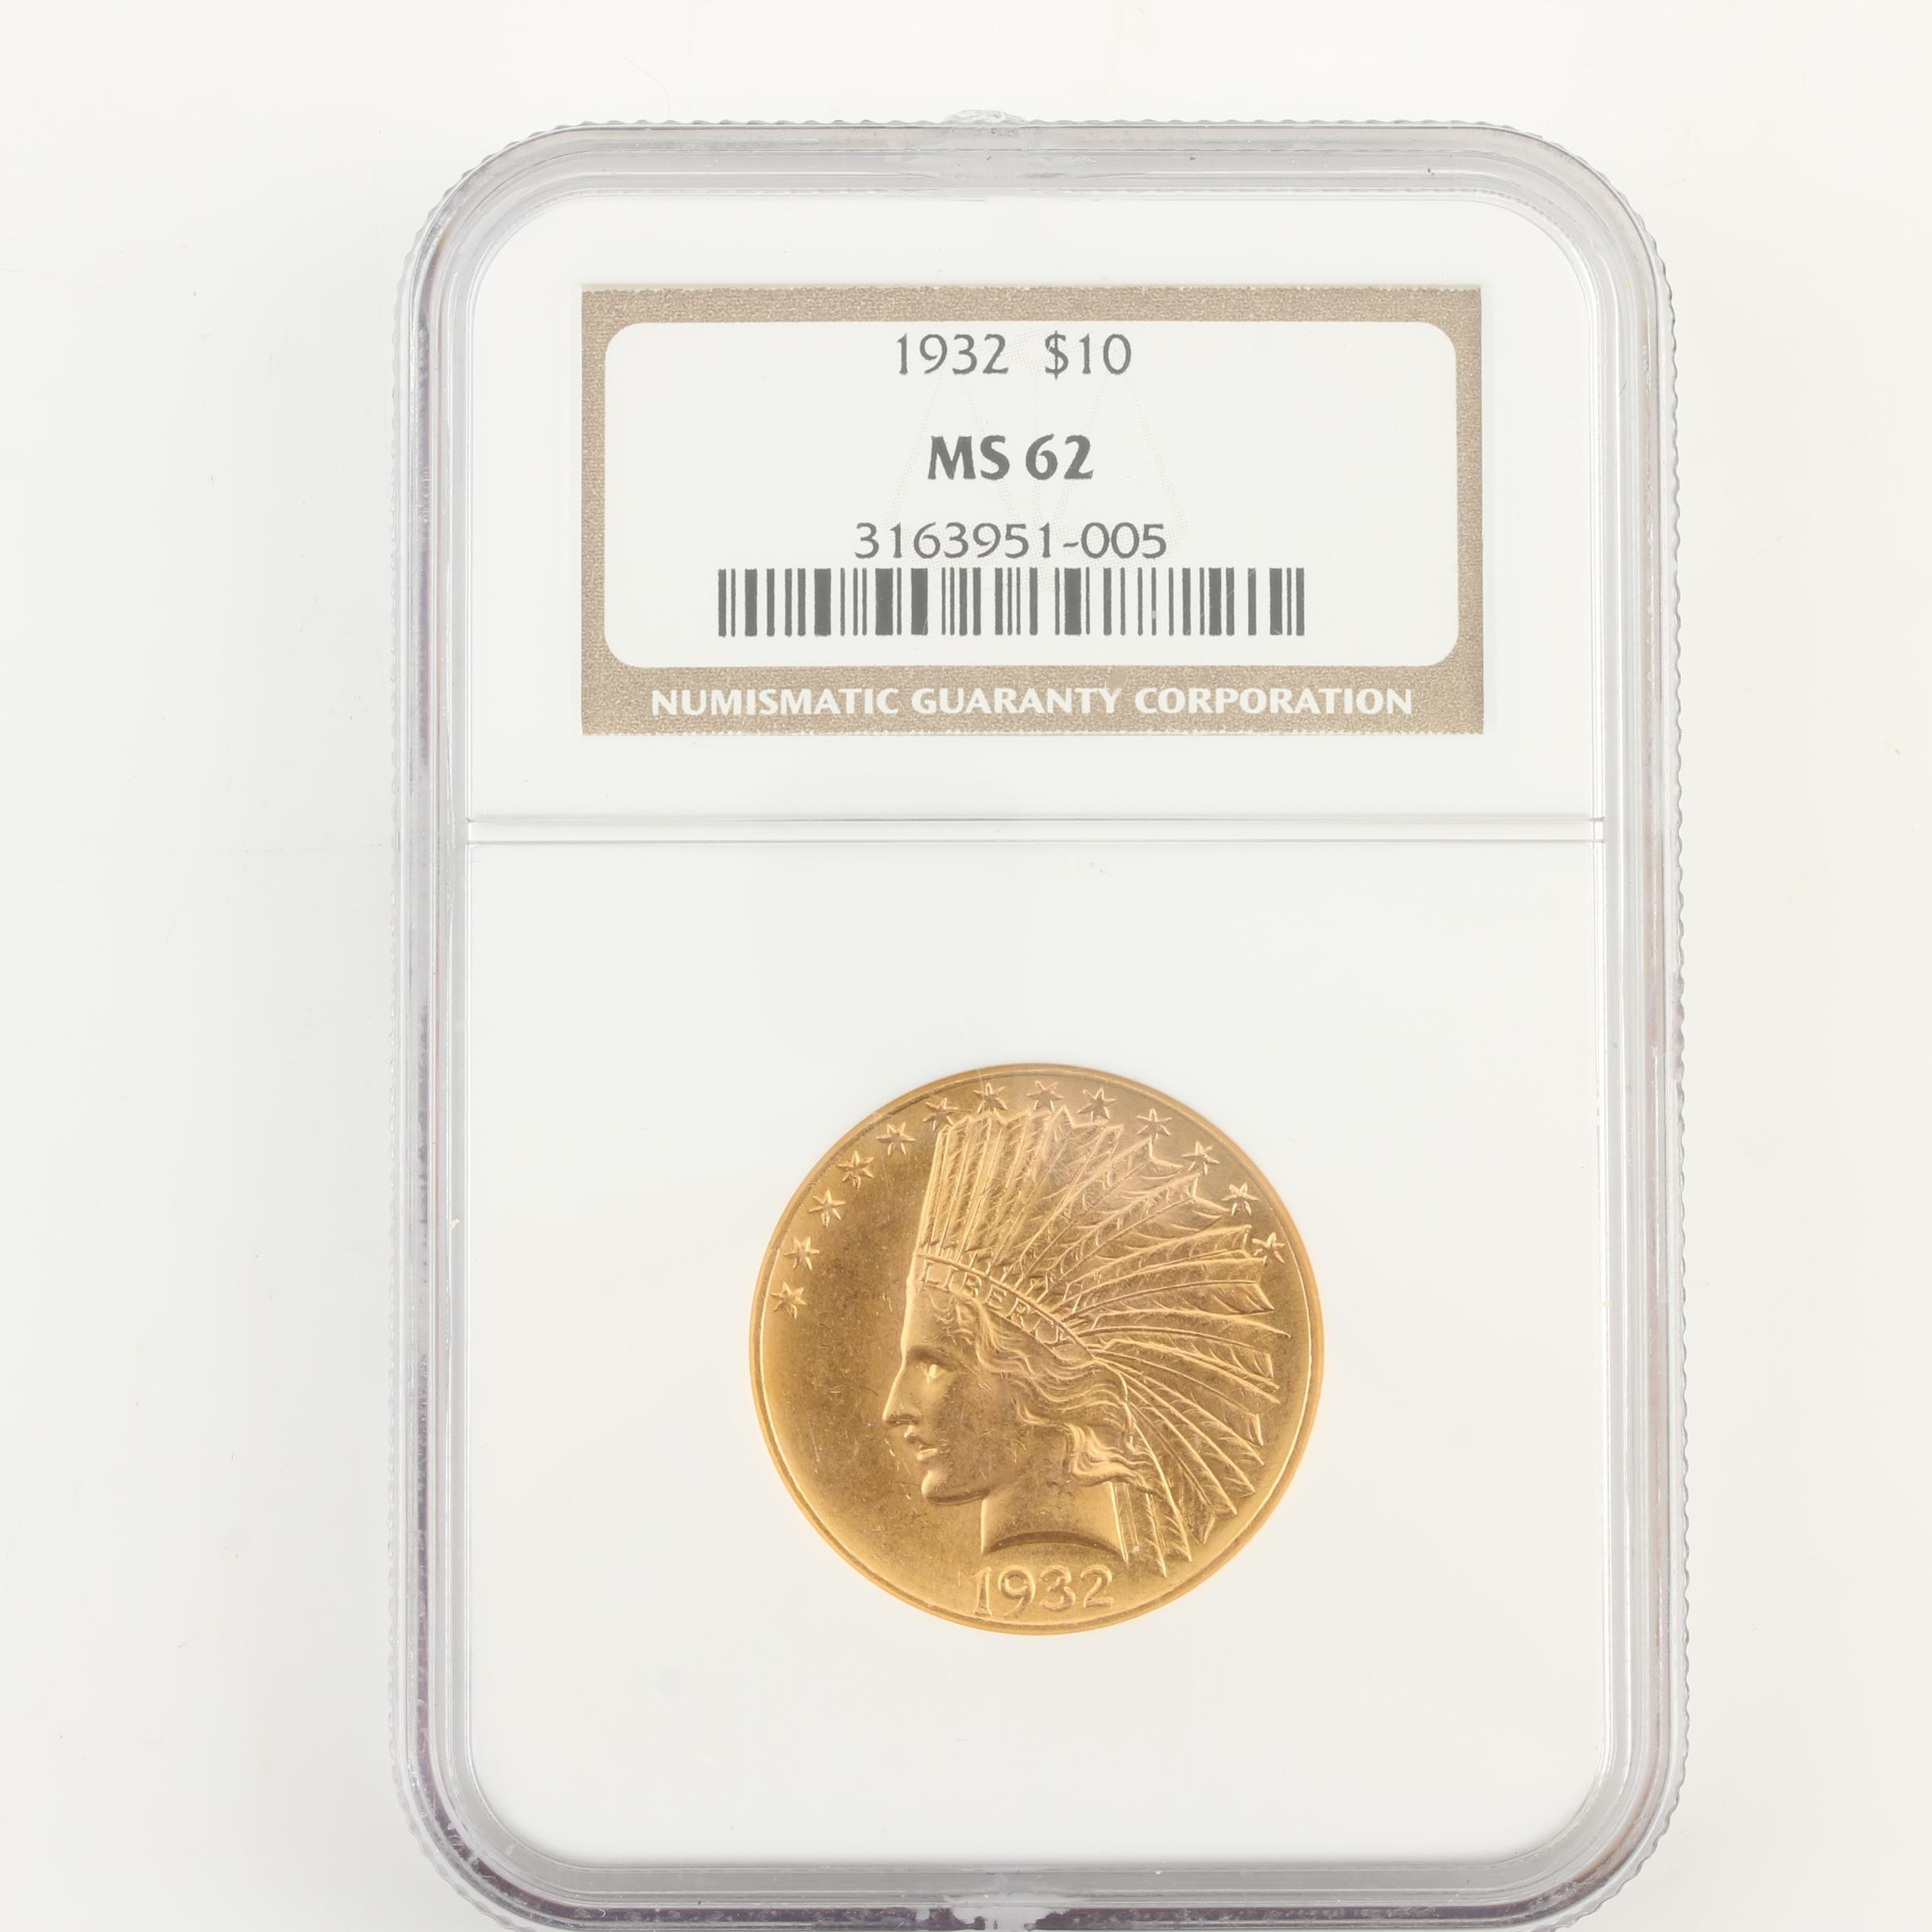 NGC Graded MS62 1932 Indian Head $10 Gold Coin